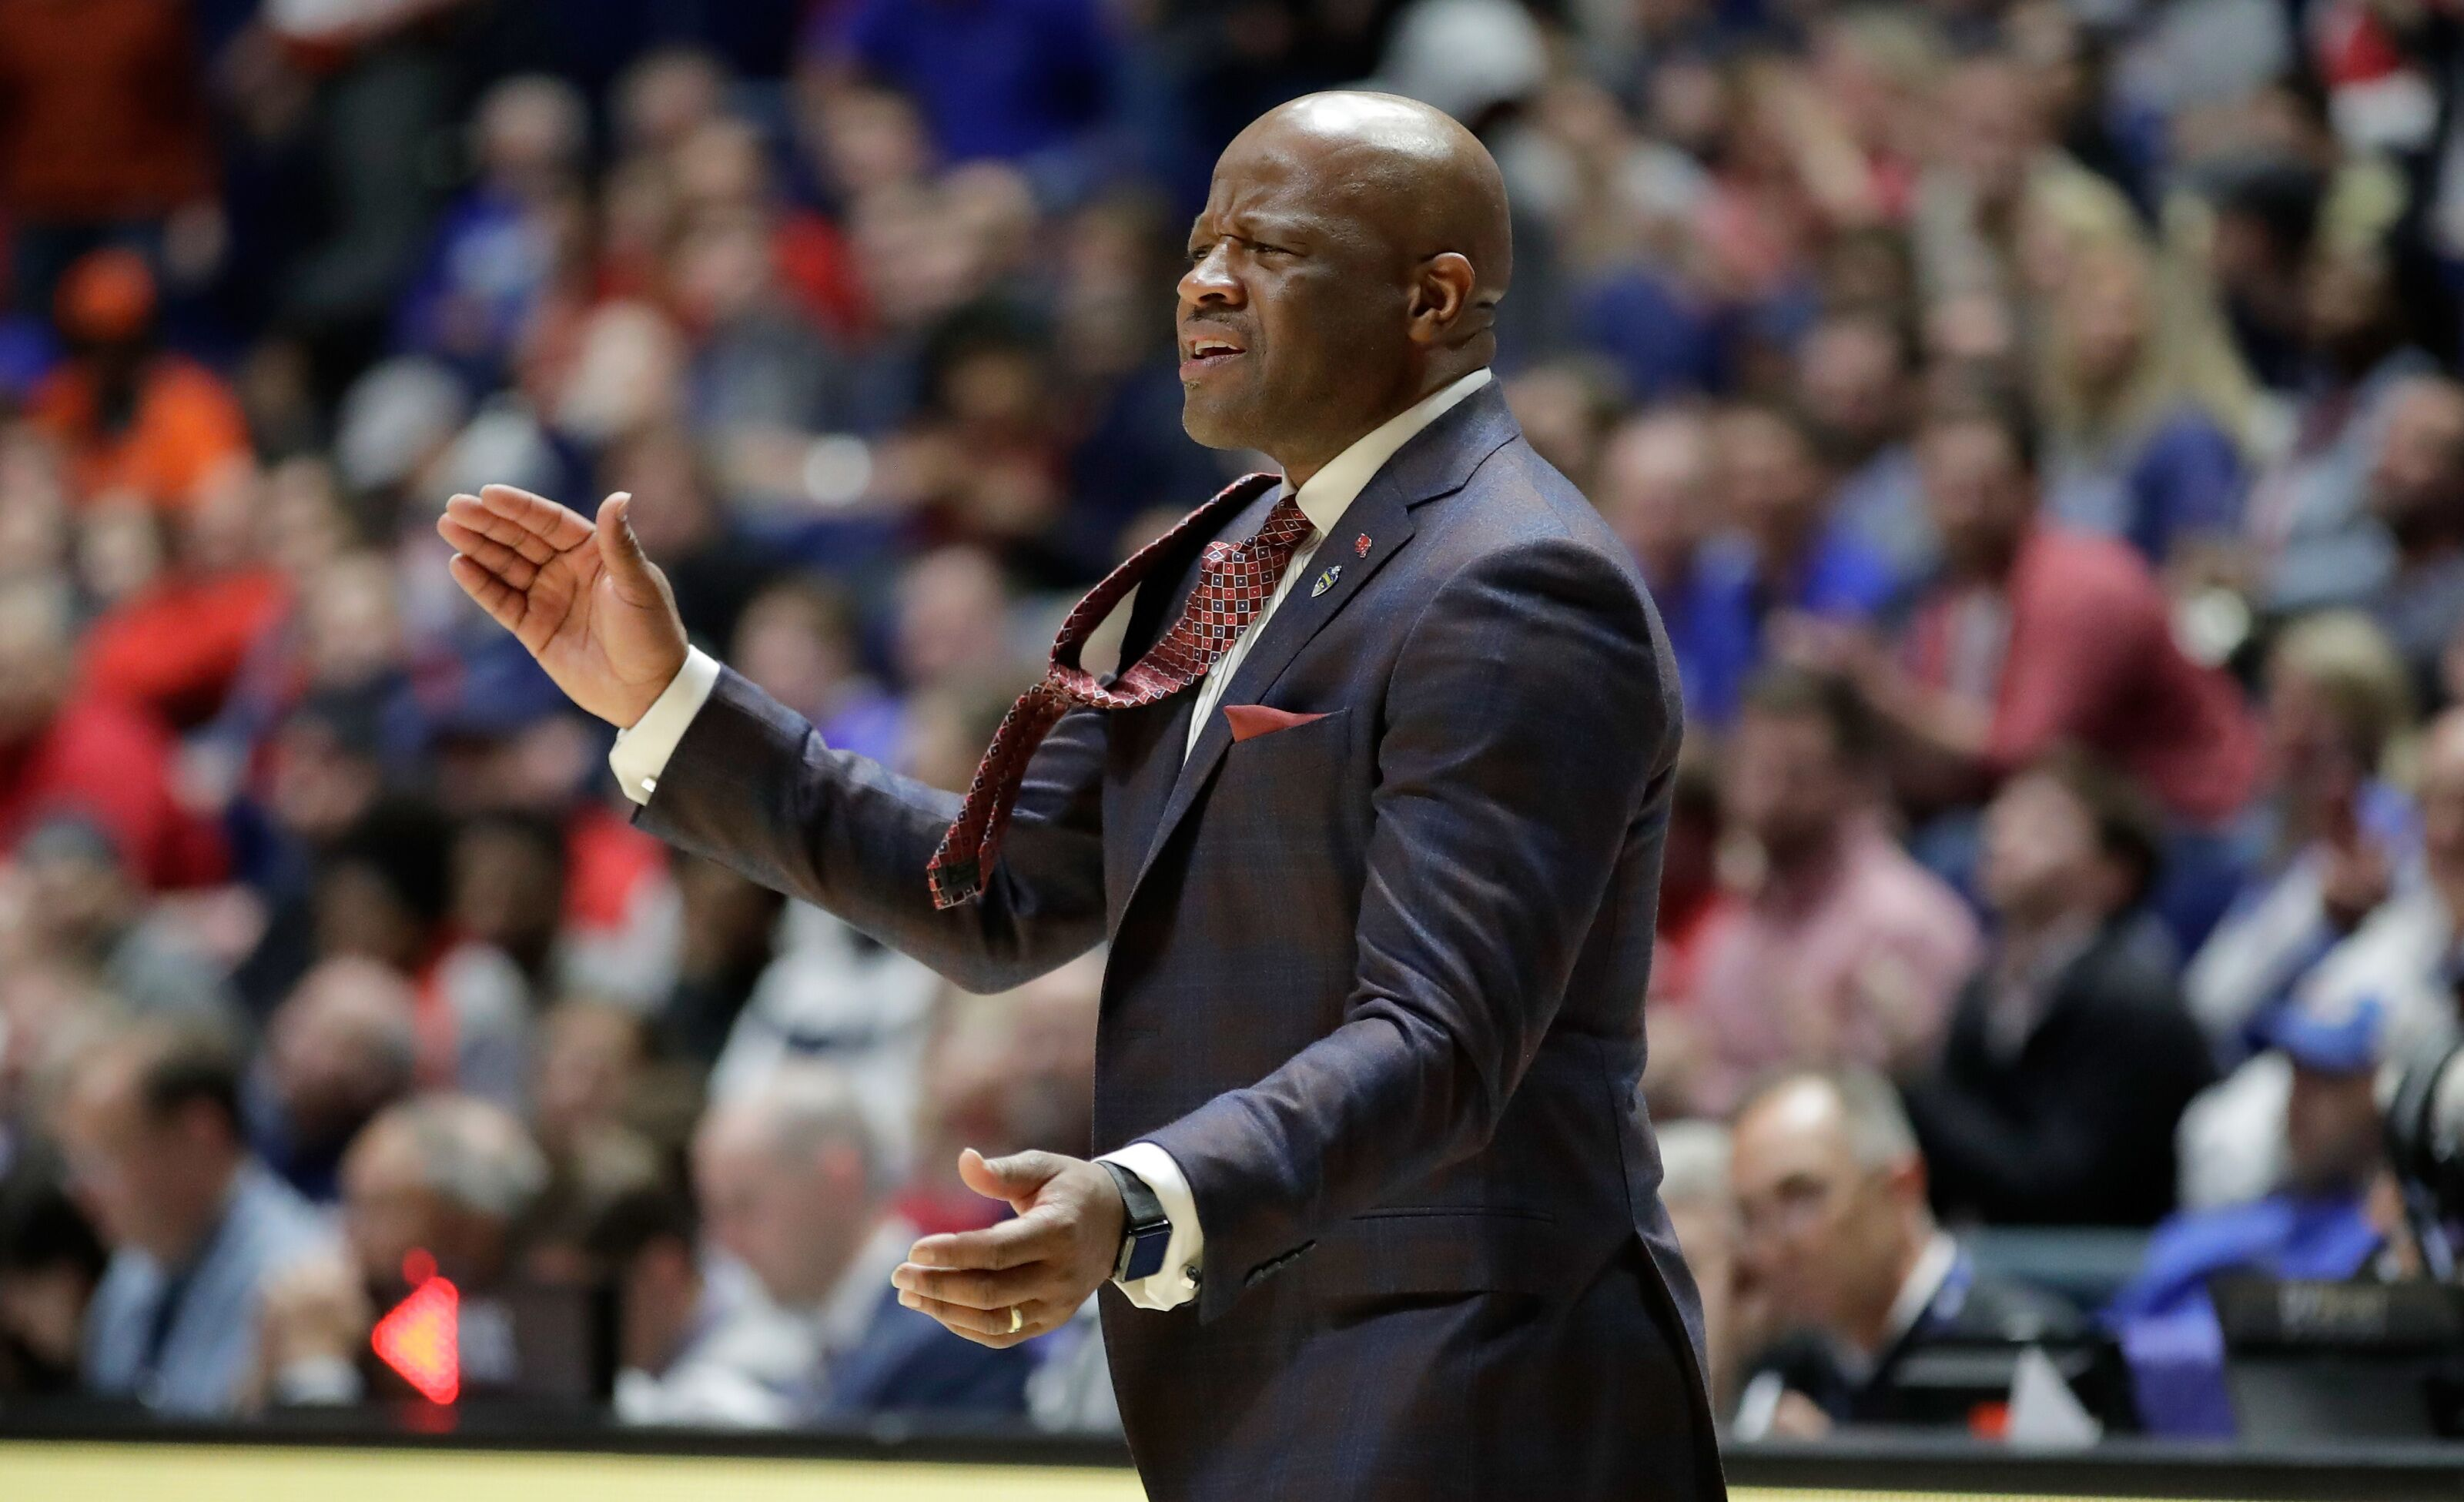 N.Y. bill paying athletes could return St. John's basketball to glory